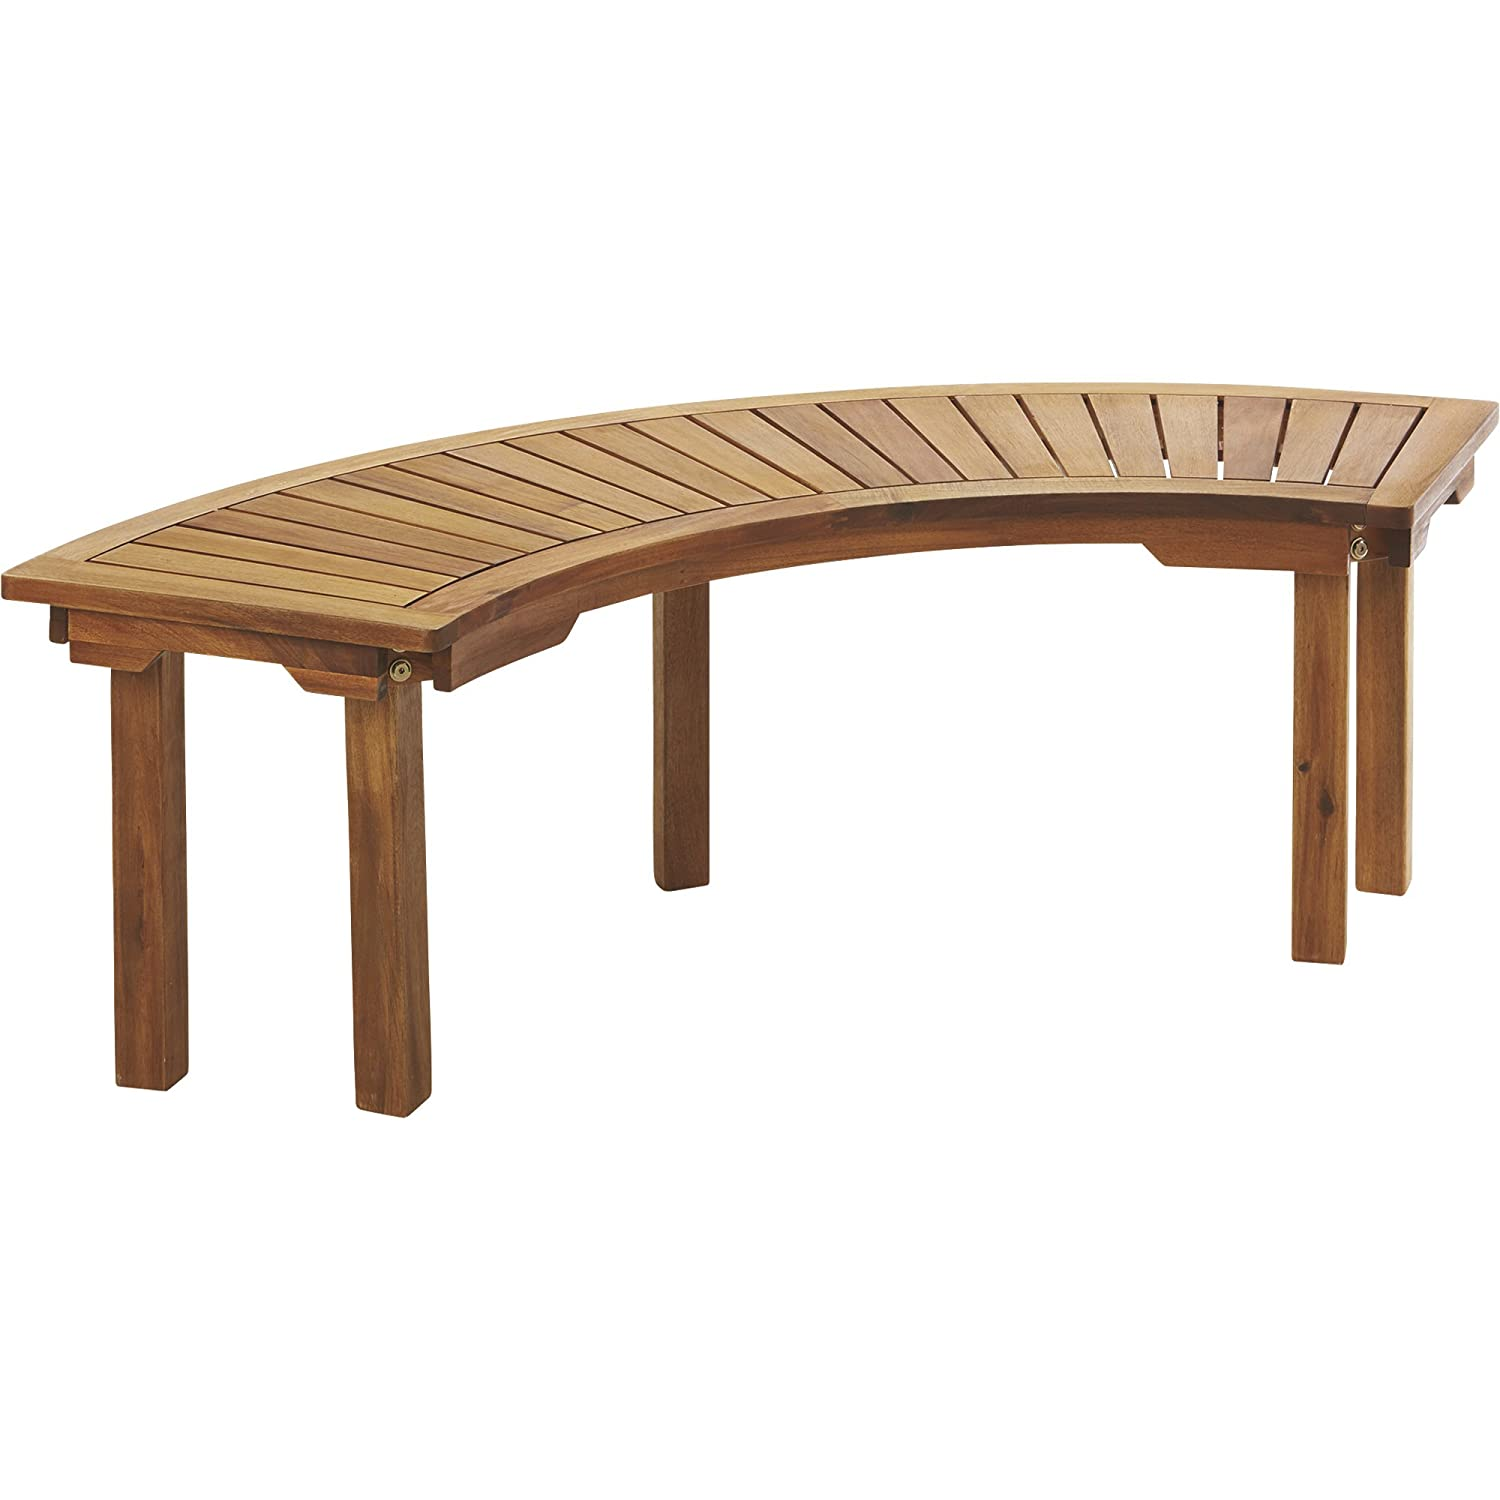 Wondrous Curved Acacia Wood Backless Bench Natural Ncnpc Chair Design For Home Ncnpcorg